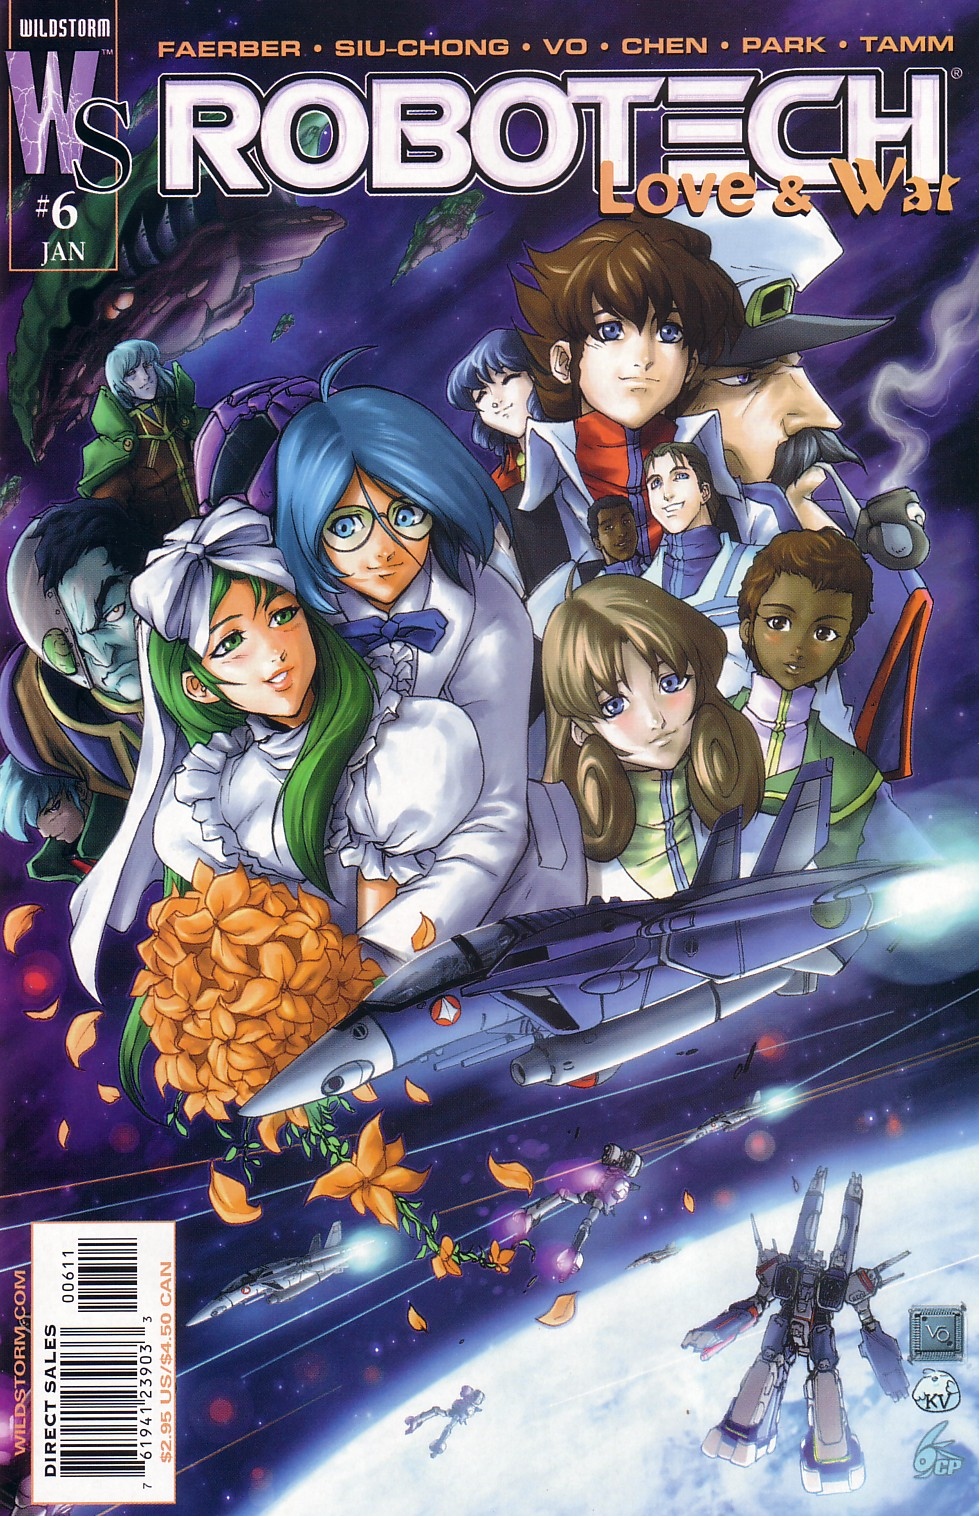 Read online Robotech: Love and War comic -  Issue #6 - 2